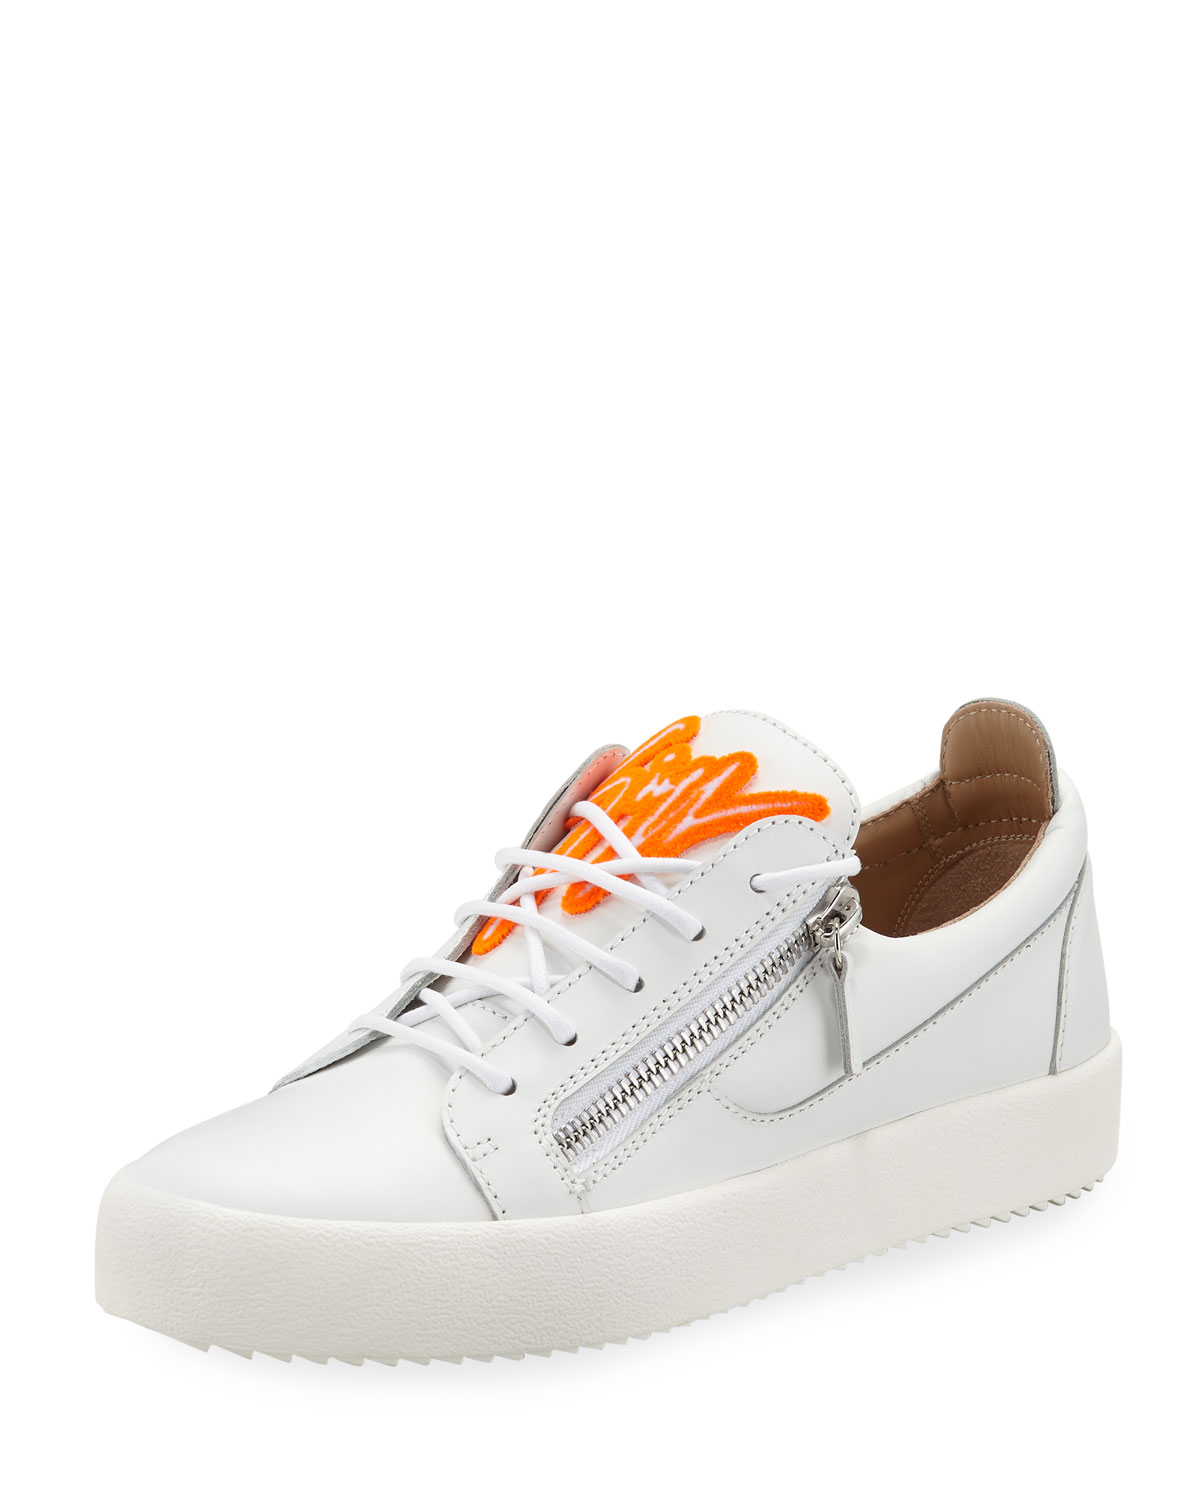 8a0785d2e84 Men's Felted Signature Low-Top Sneakers